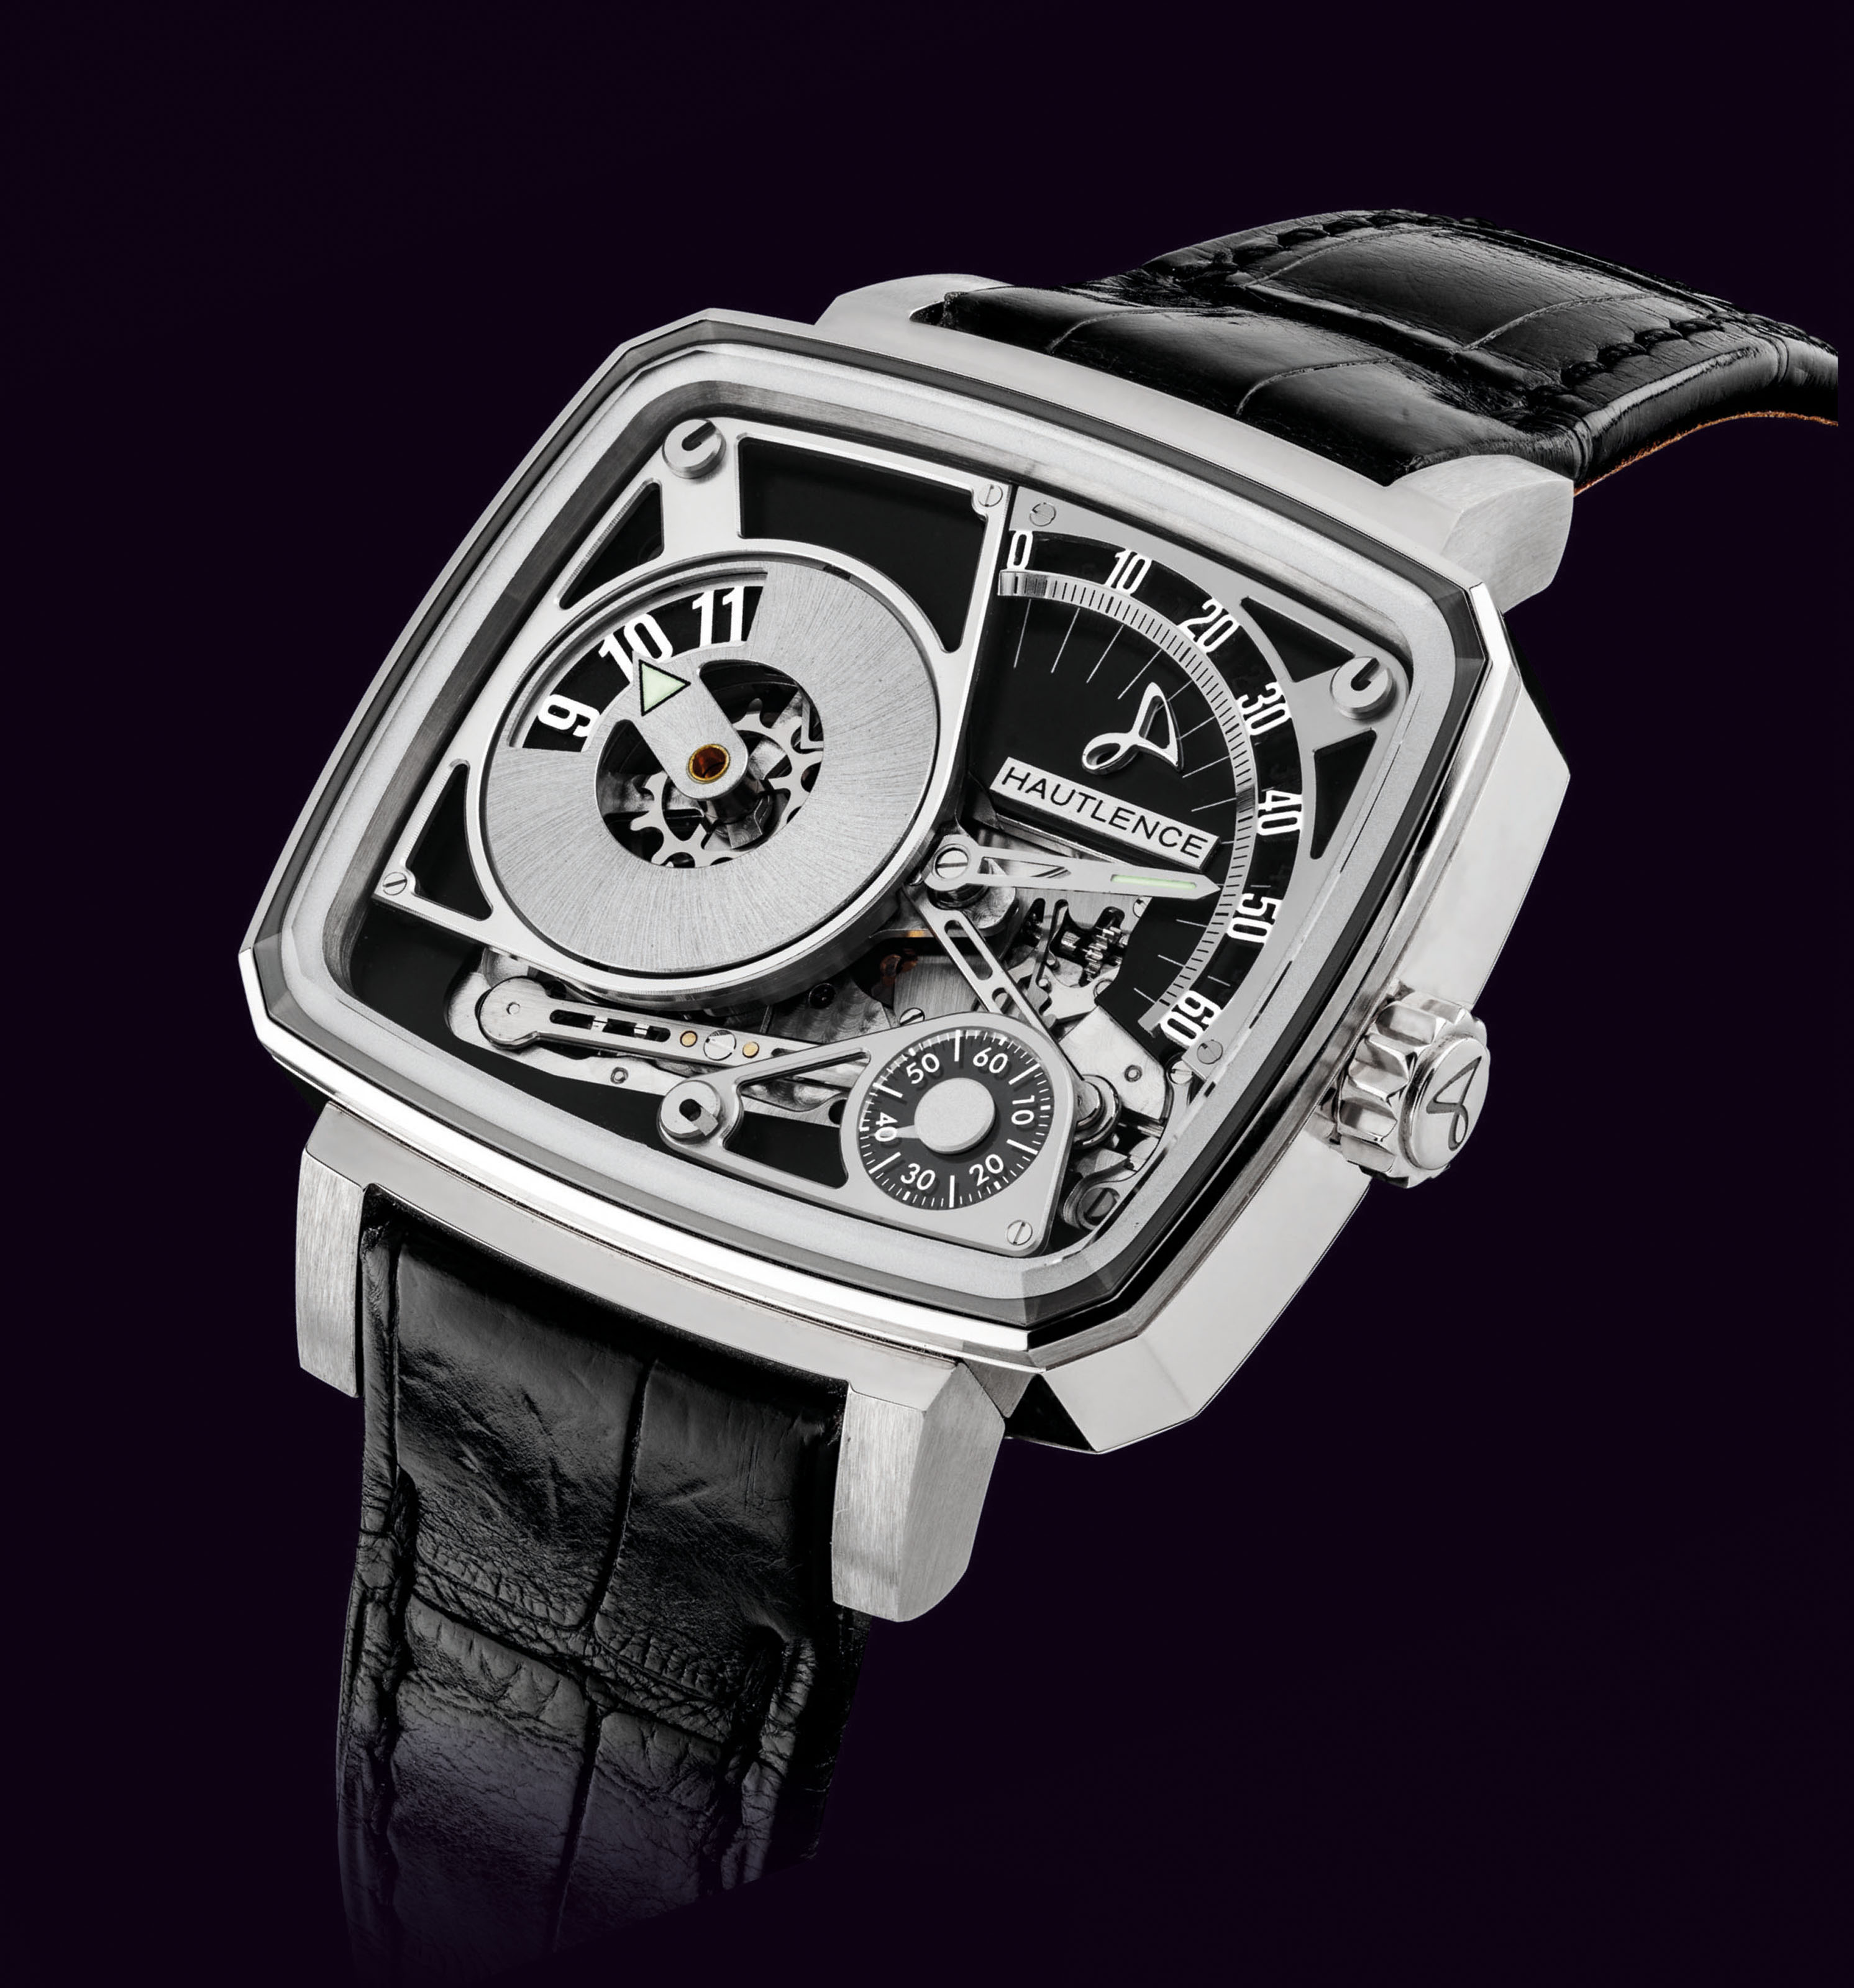 HAUTLENCE. AN 18K WHITE GOLD LIMITED EDITION SKELETONISED JUMP HOUR WRISTWATCH WITH RETROGRADE MINUTES